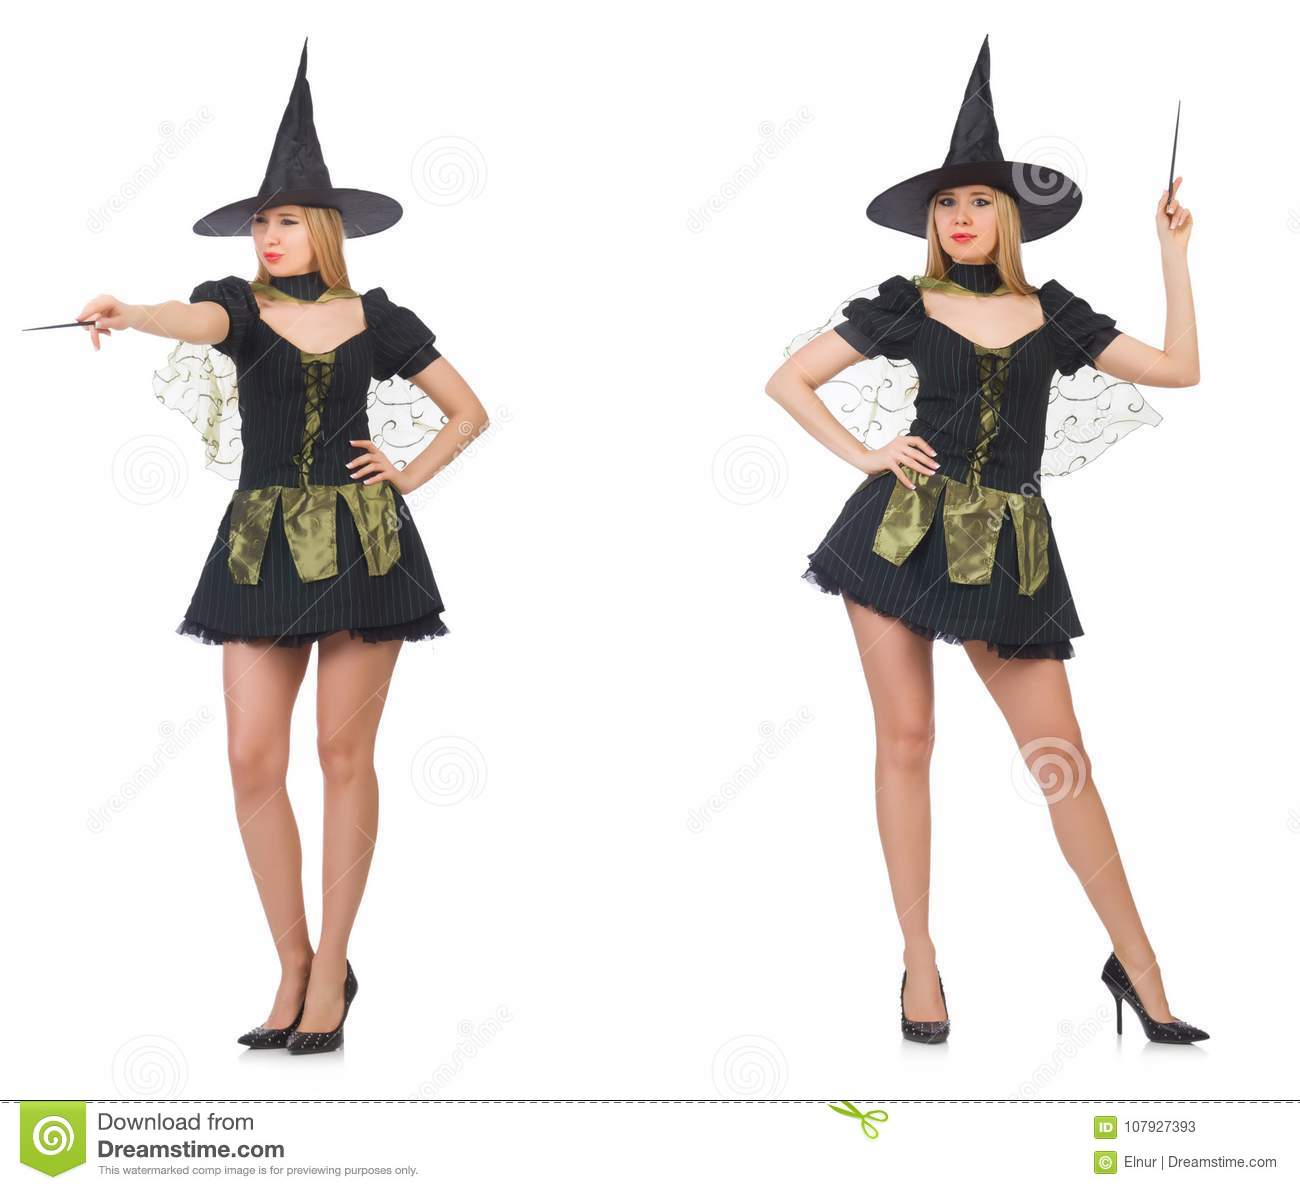 The Woman Magician Doing Her Tricks With Wand Stock Image - Image of